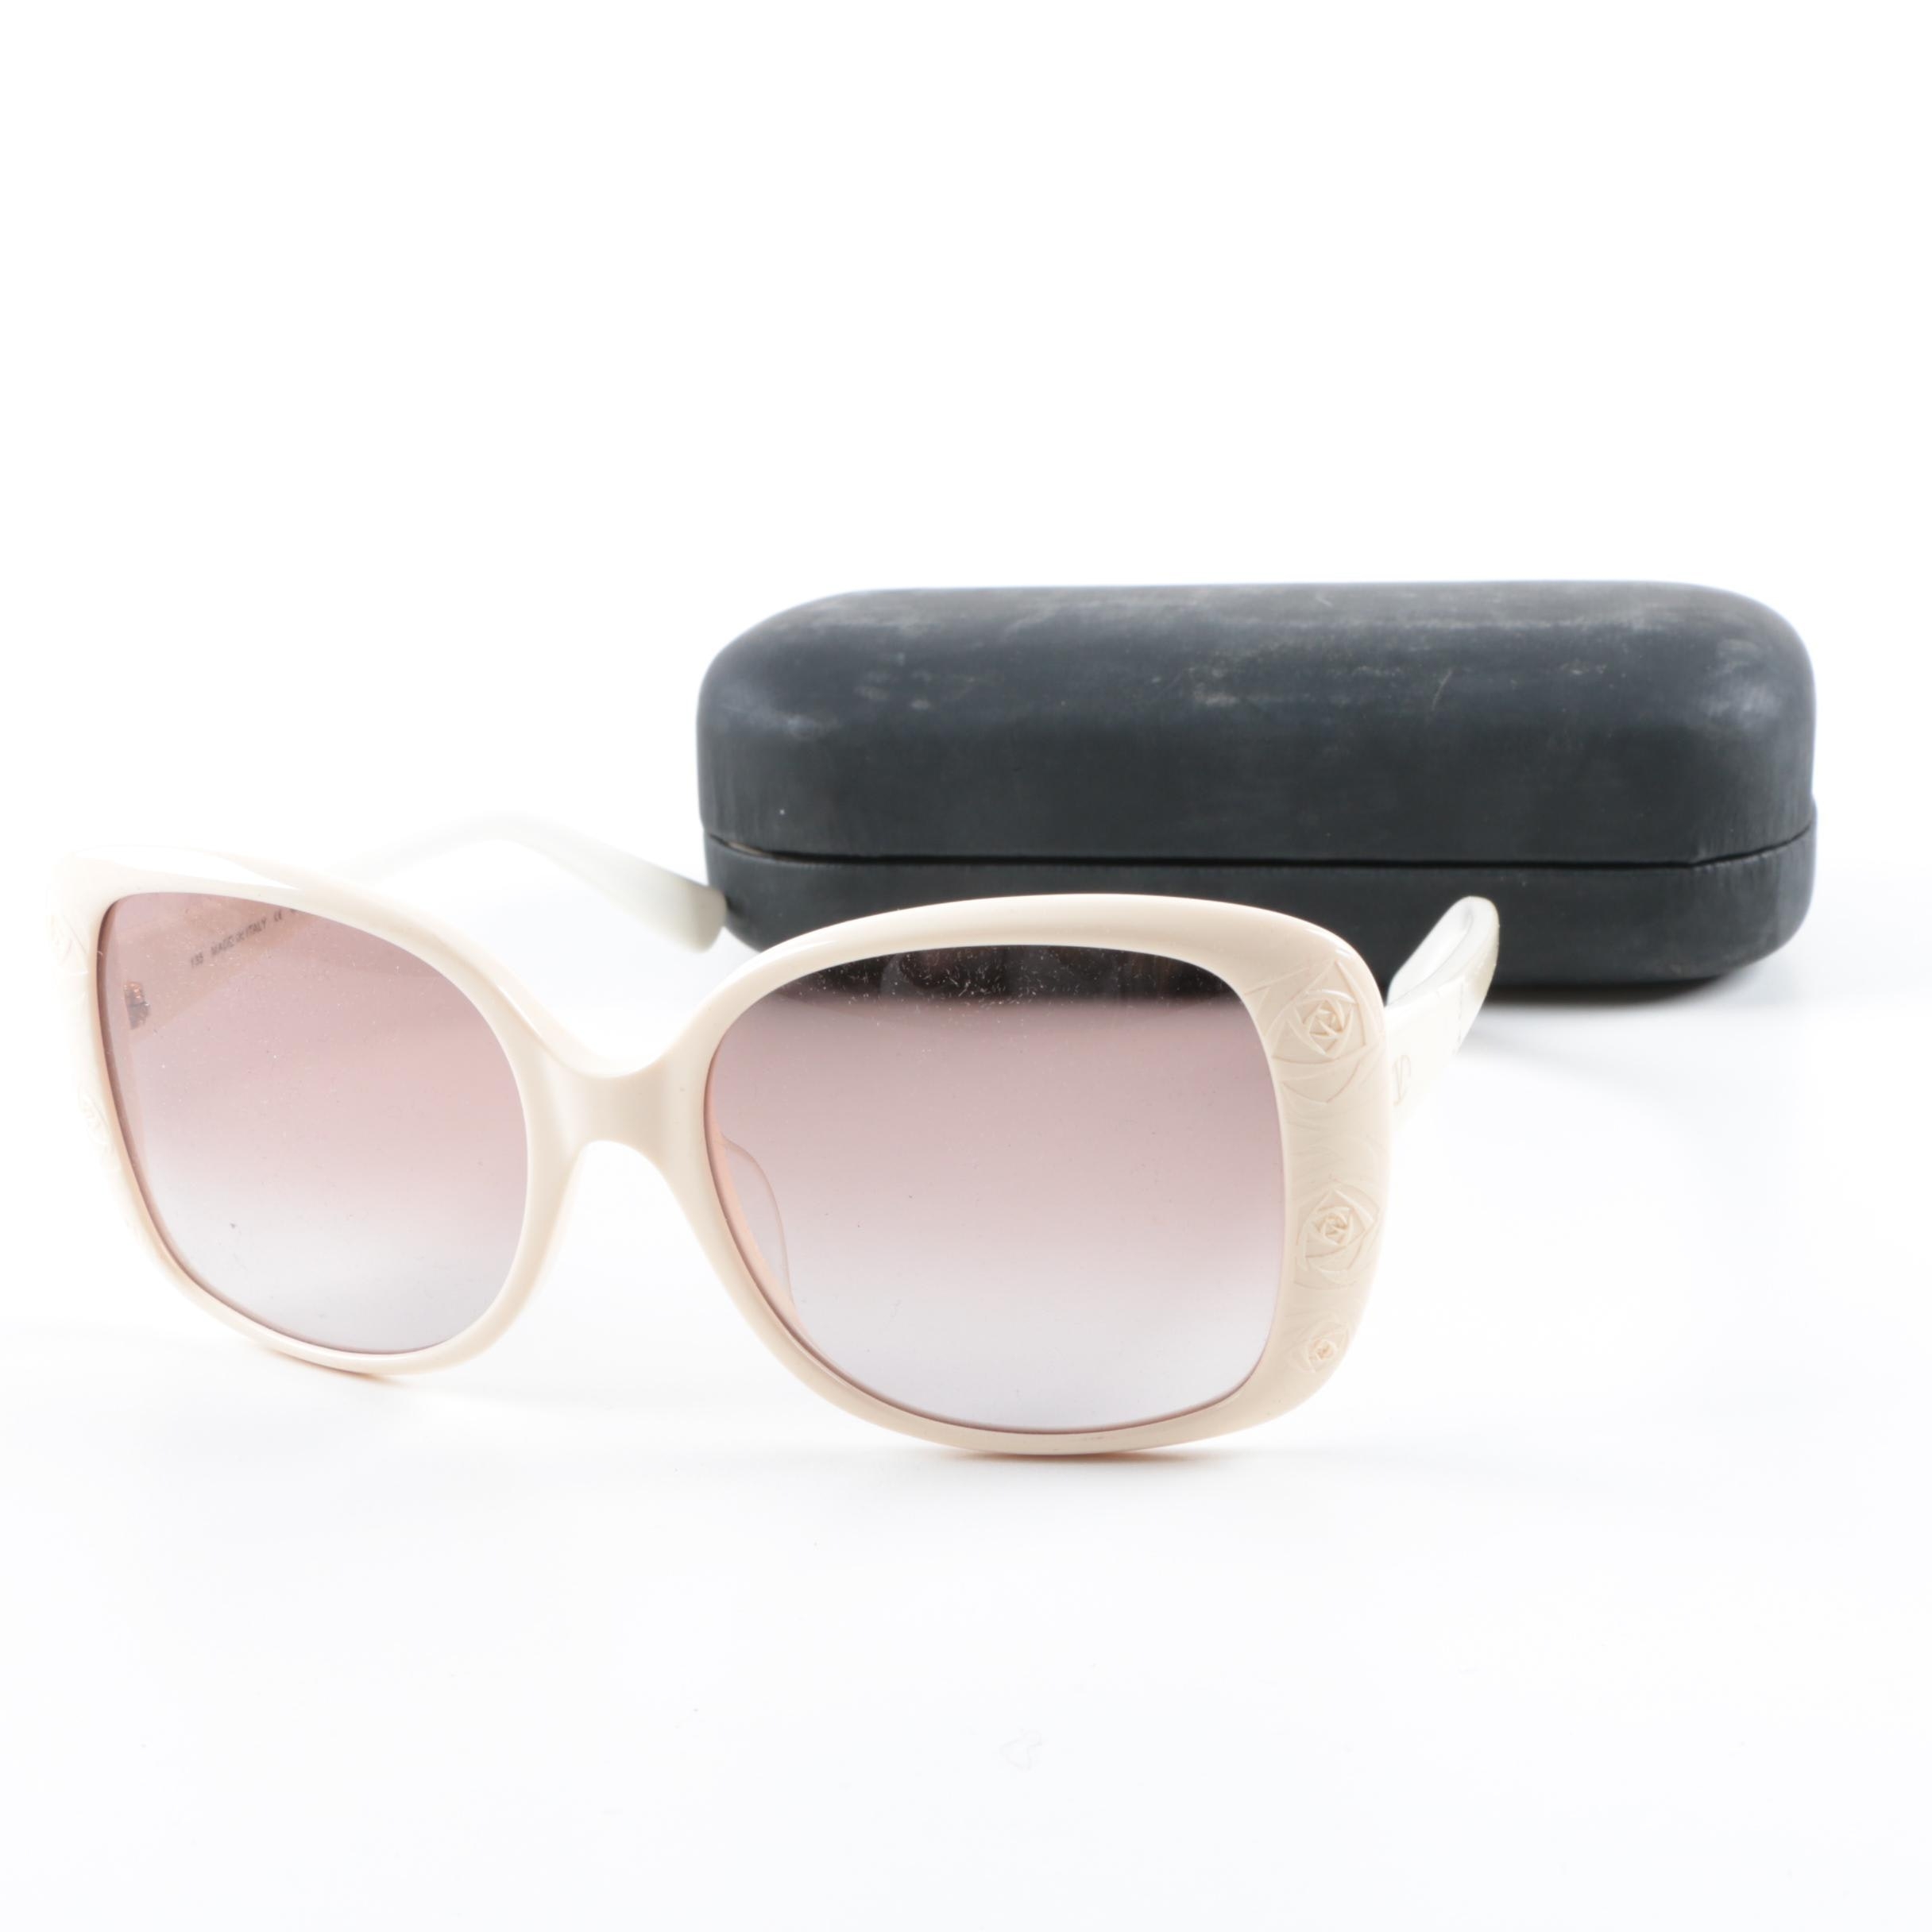 Valentino Off-White Square Sunglasses